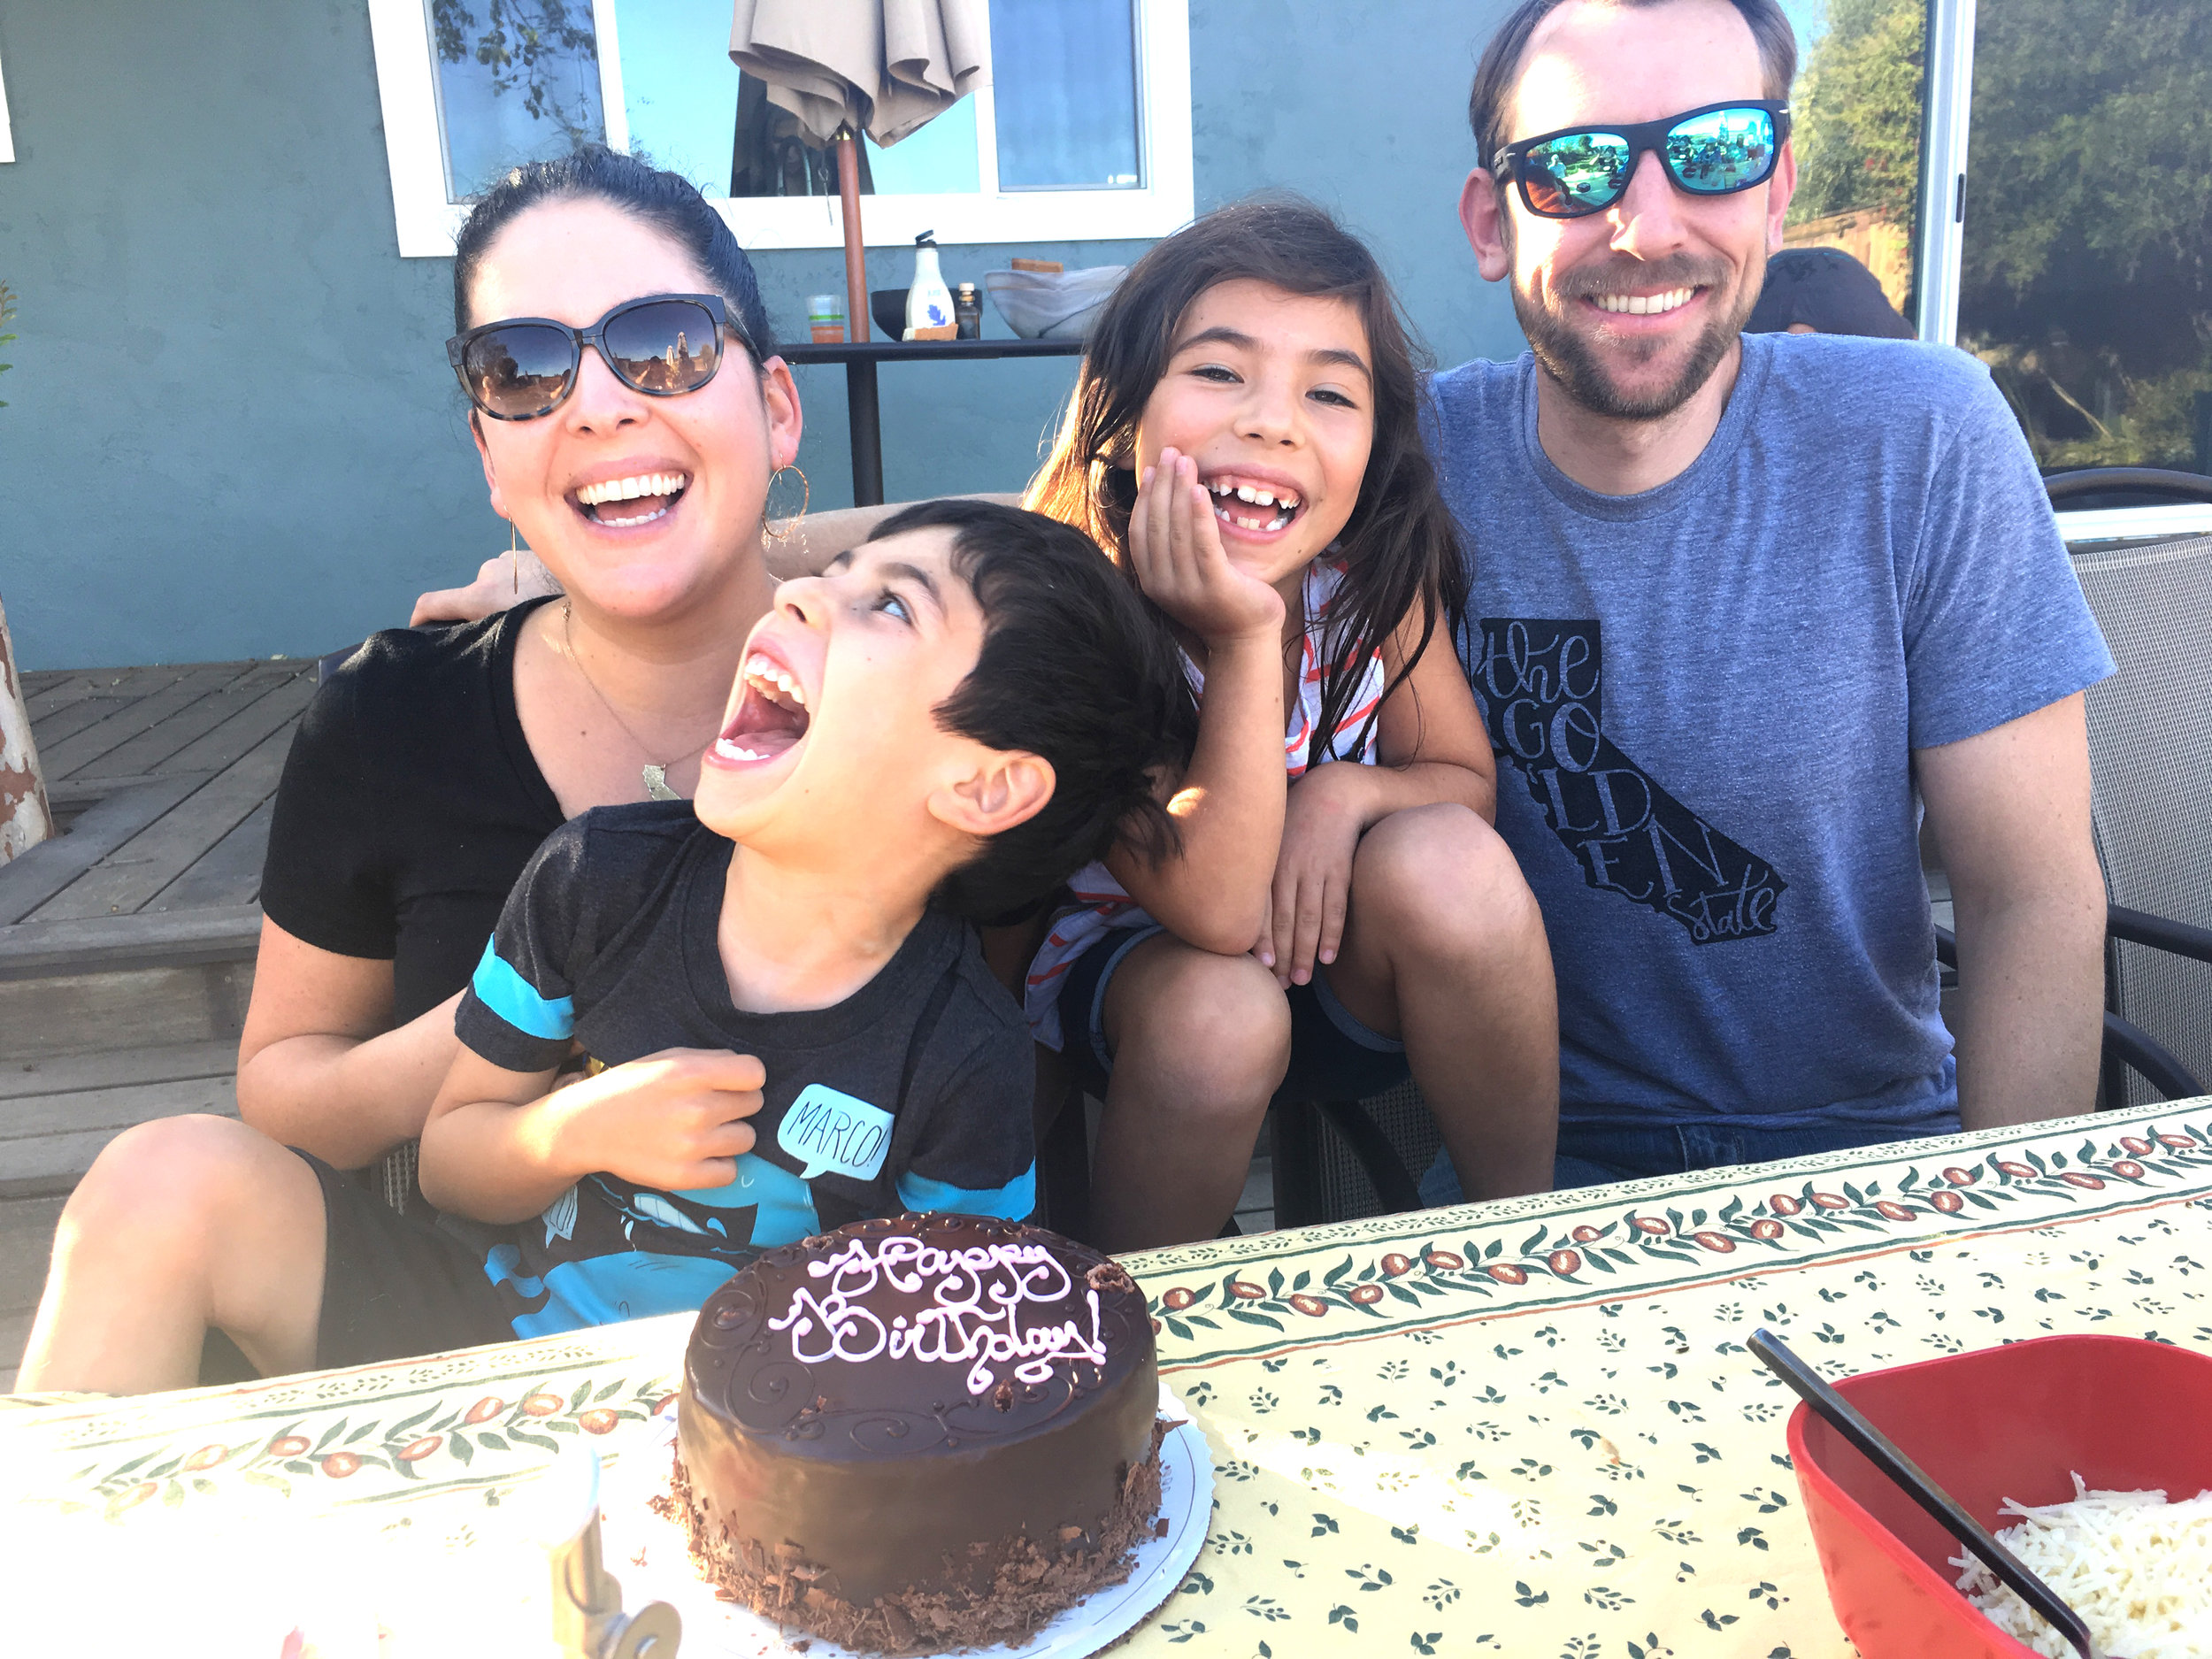 We love to celebrate birthdays with our niece and nephew